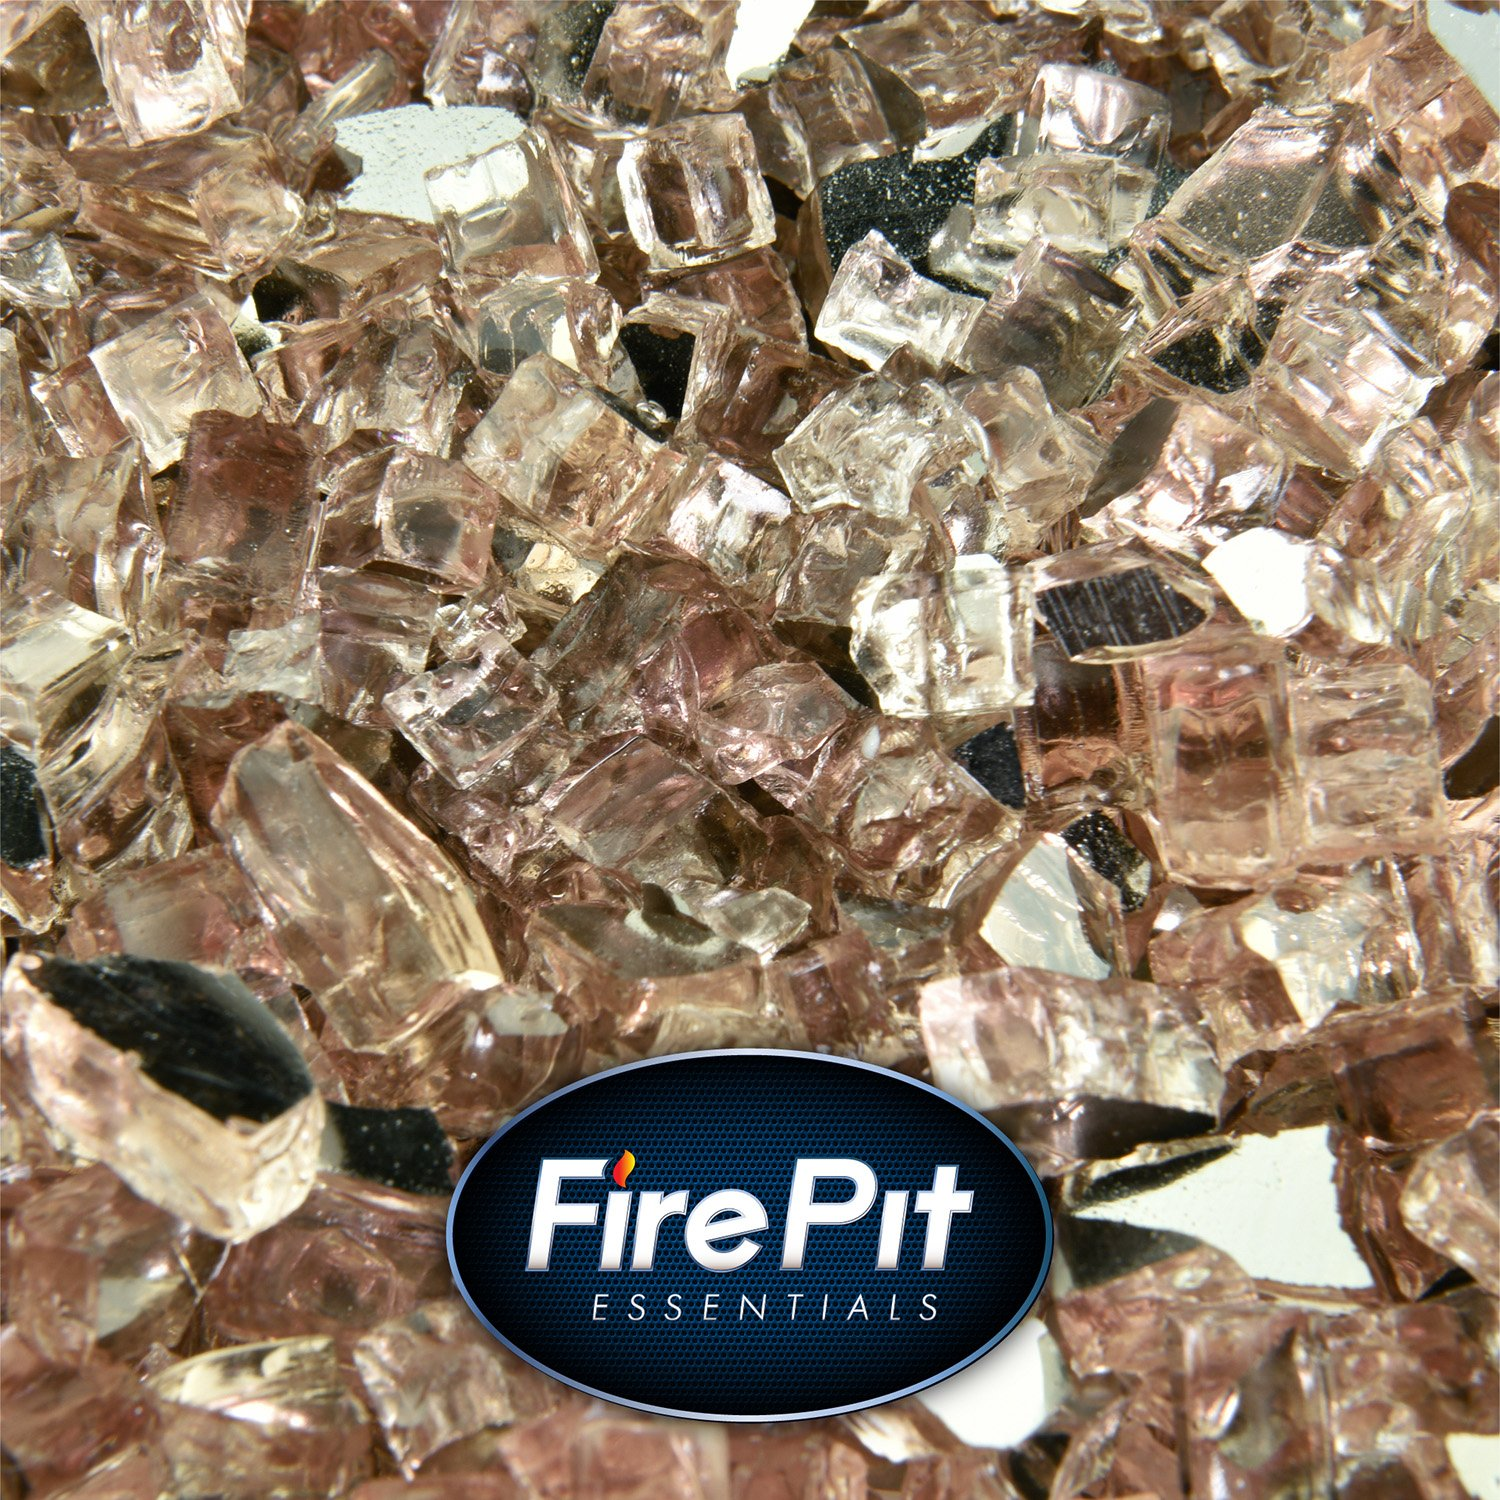 Rose Gold - Fire Glass for Indoor and Outdoor Fire Pits or Fireplaces | 10 Pounds | 1/4 Inch, Reflective